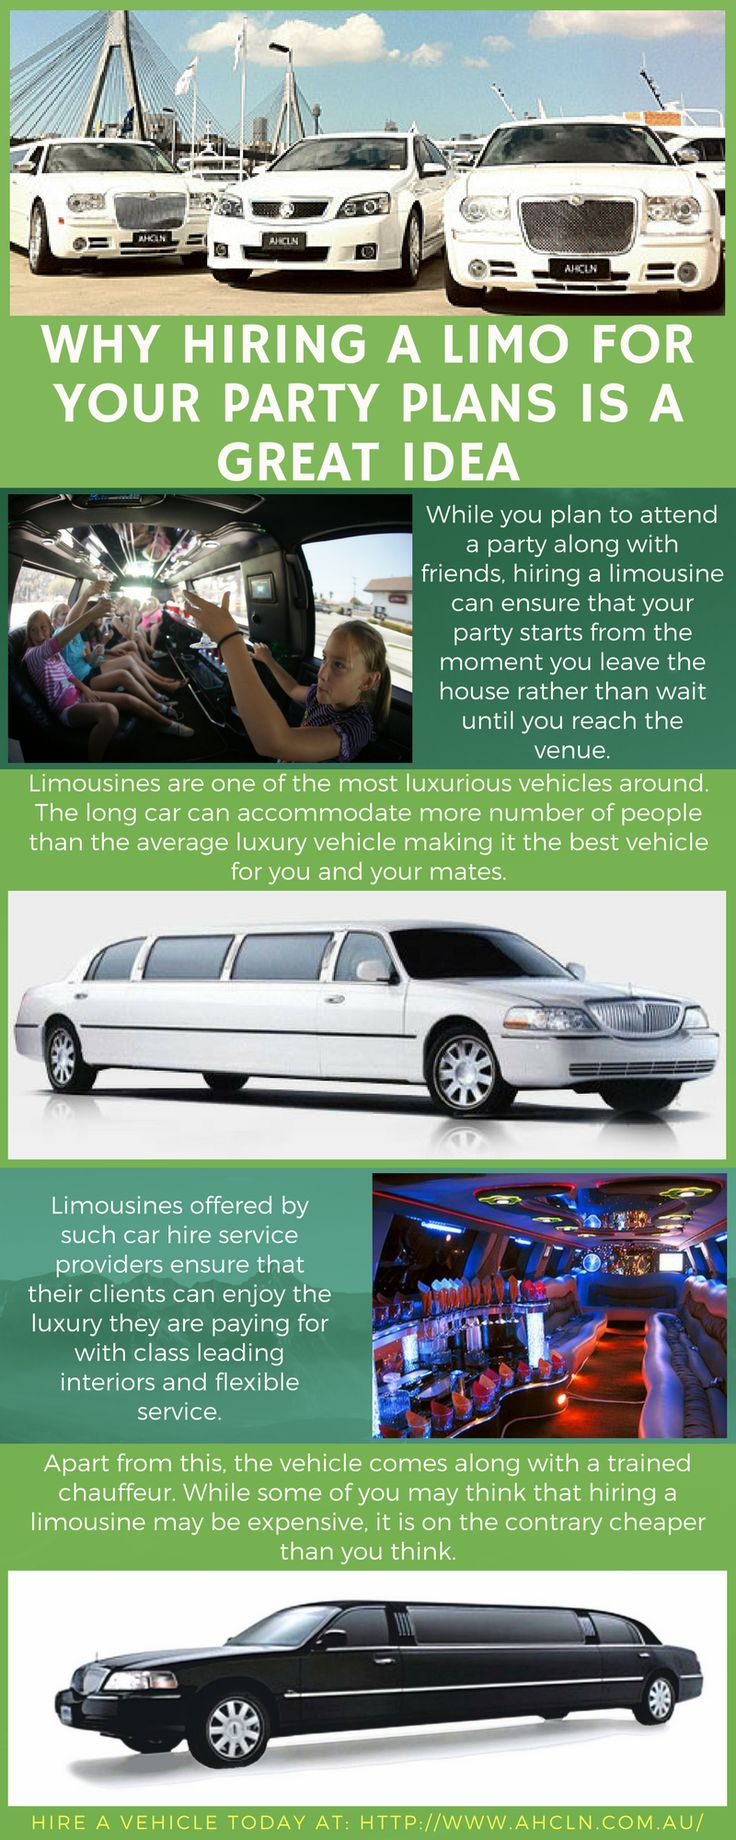 Limousines are one of the most luxurious vehicles around. The long car can accommodate more number of people than the average luxury vehicle making it the best vehicle for you and your mates. Limousines available for hire are loaded with luxury defining features including mini bars, television sets and other such features. Hire a vehicle today at:http://www.ahcln.com.au/